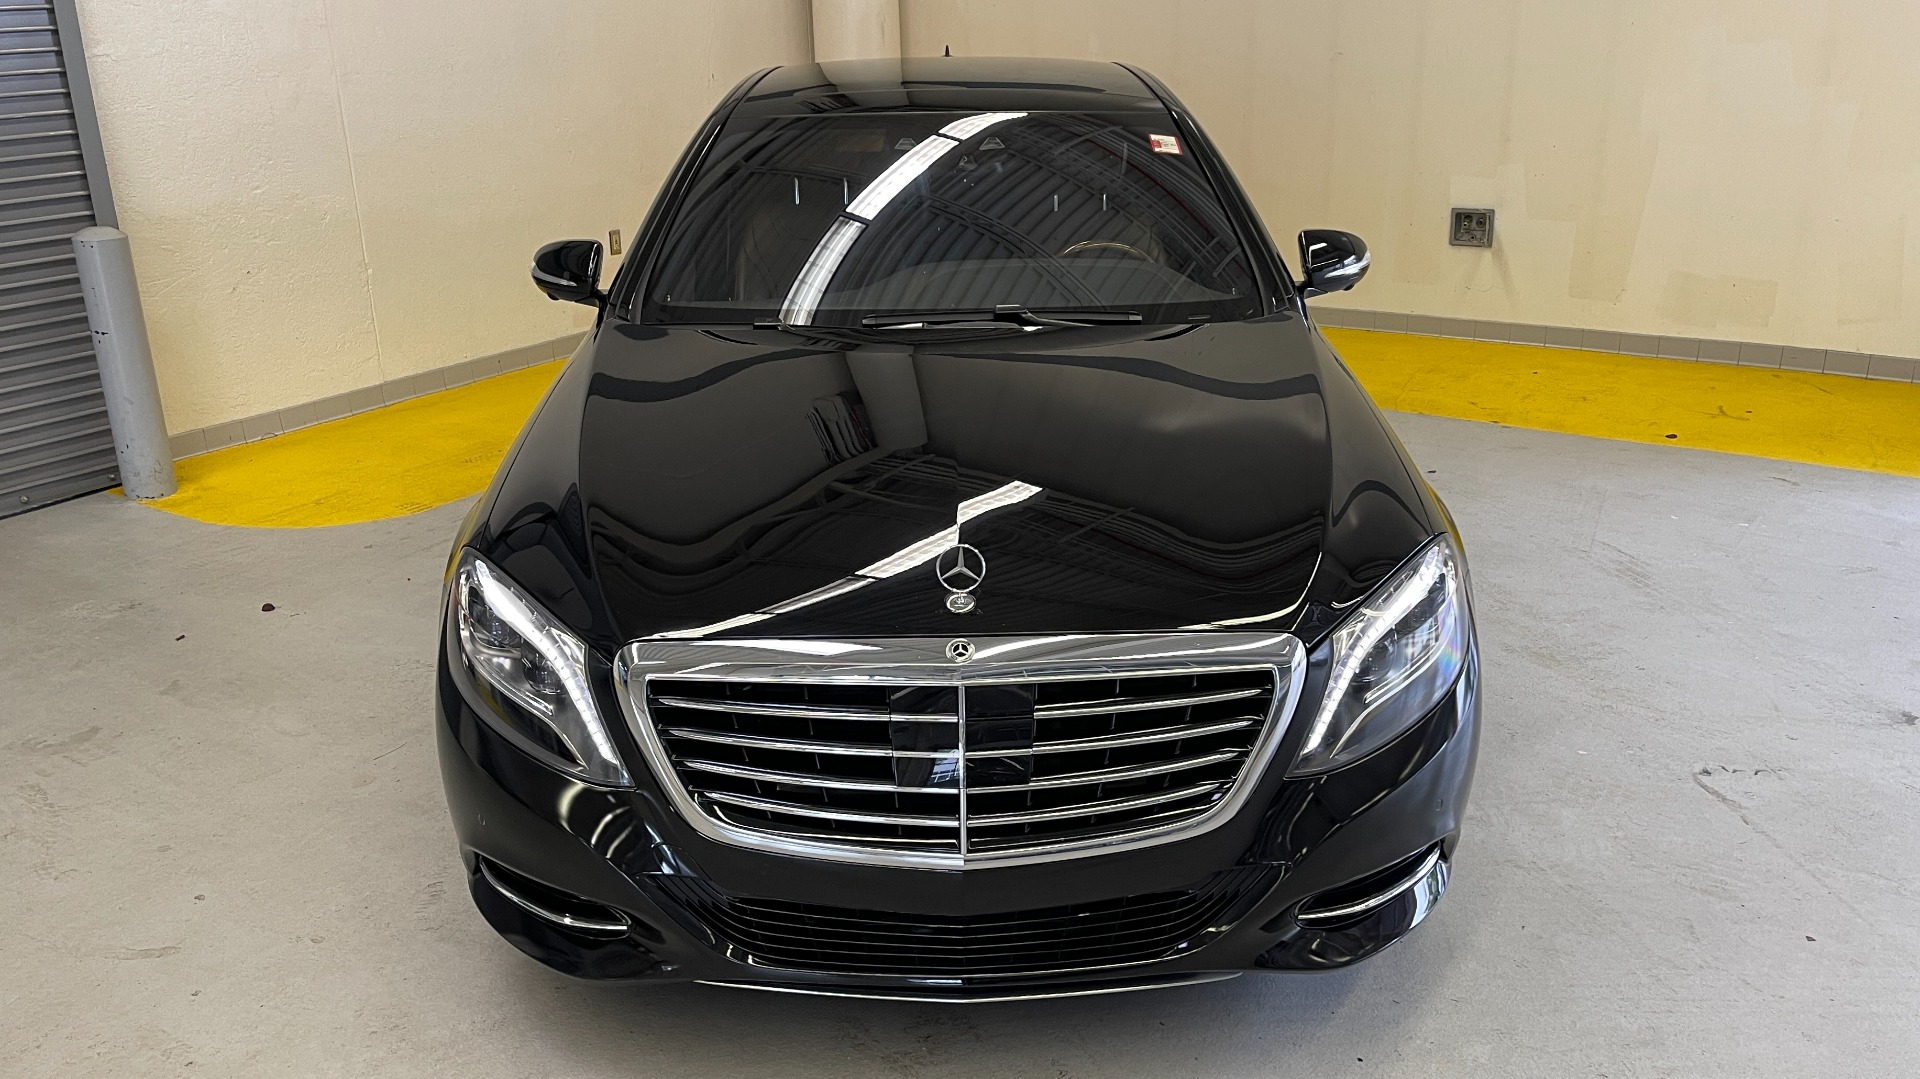 Used 2017 Mercedes-Benz S-CLASS S 550 4MATIC PREMIUM / NAV / BURMESTER / SUNROOF / REARVIEW for sale $58,995 at Formula Imports in Charlotte NC 28227 10